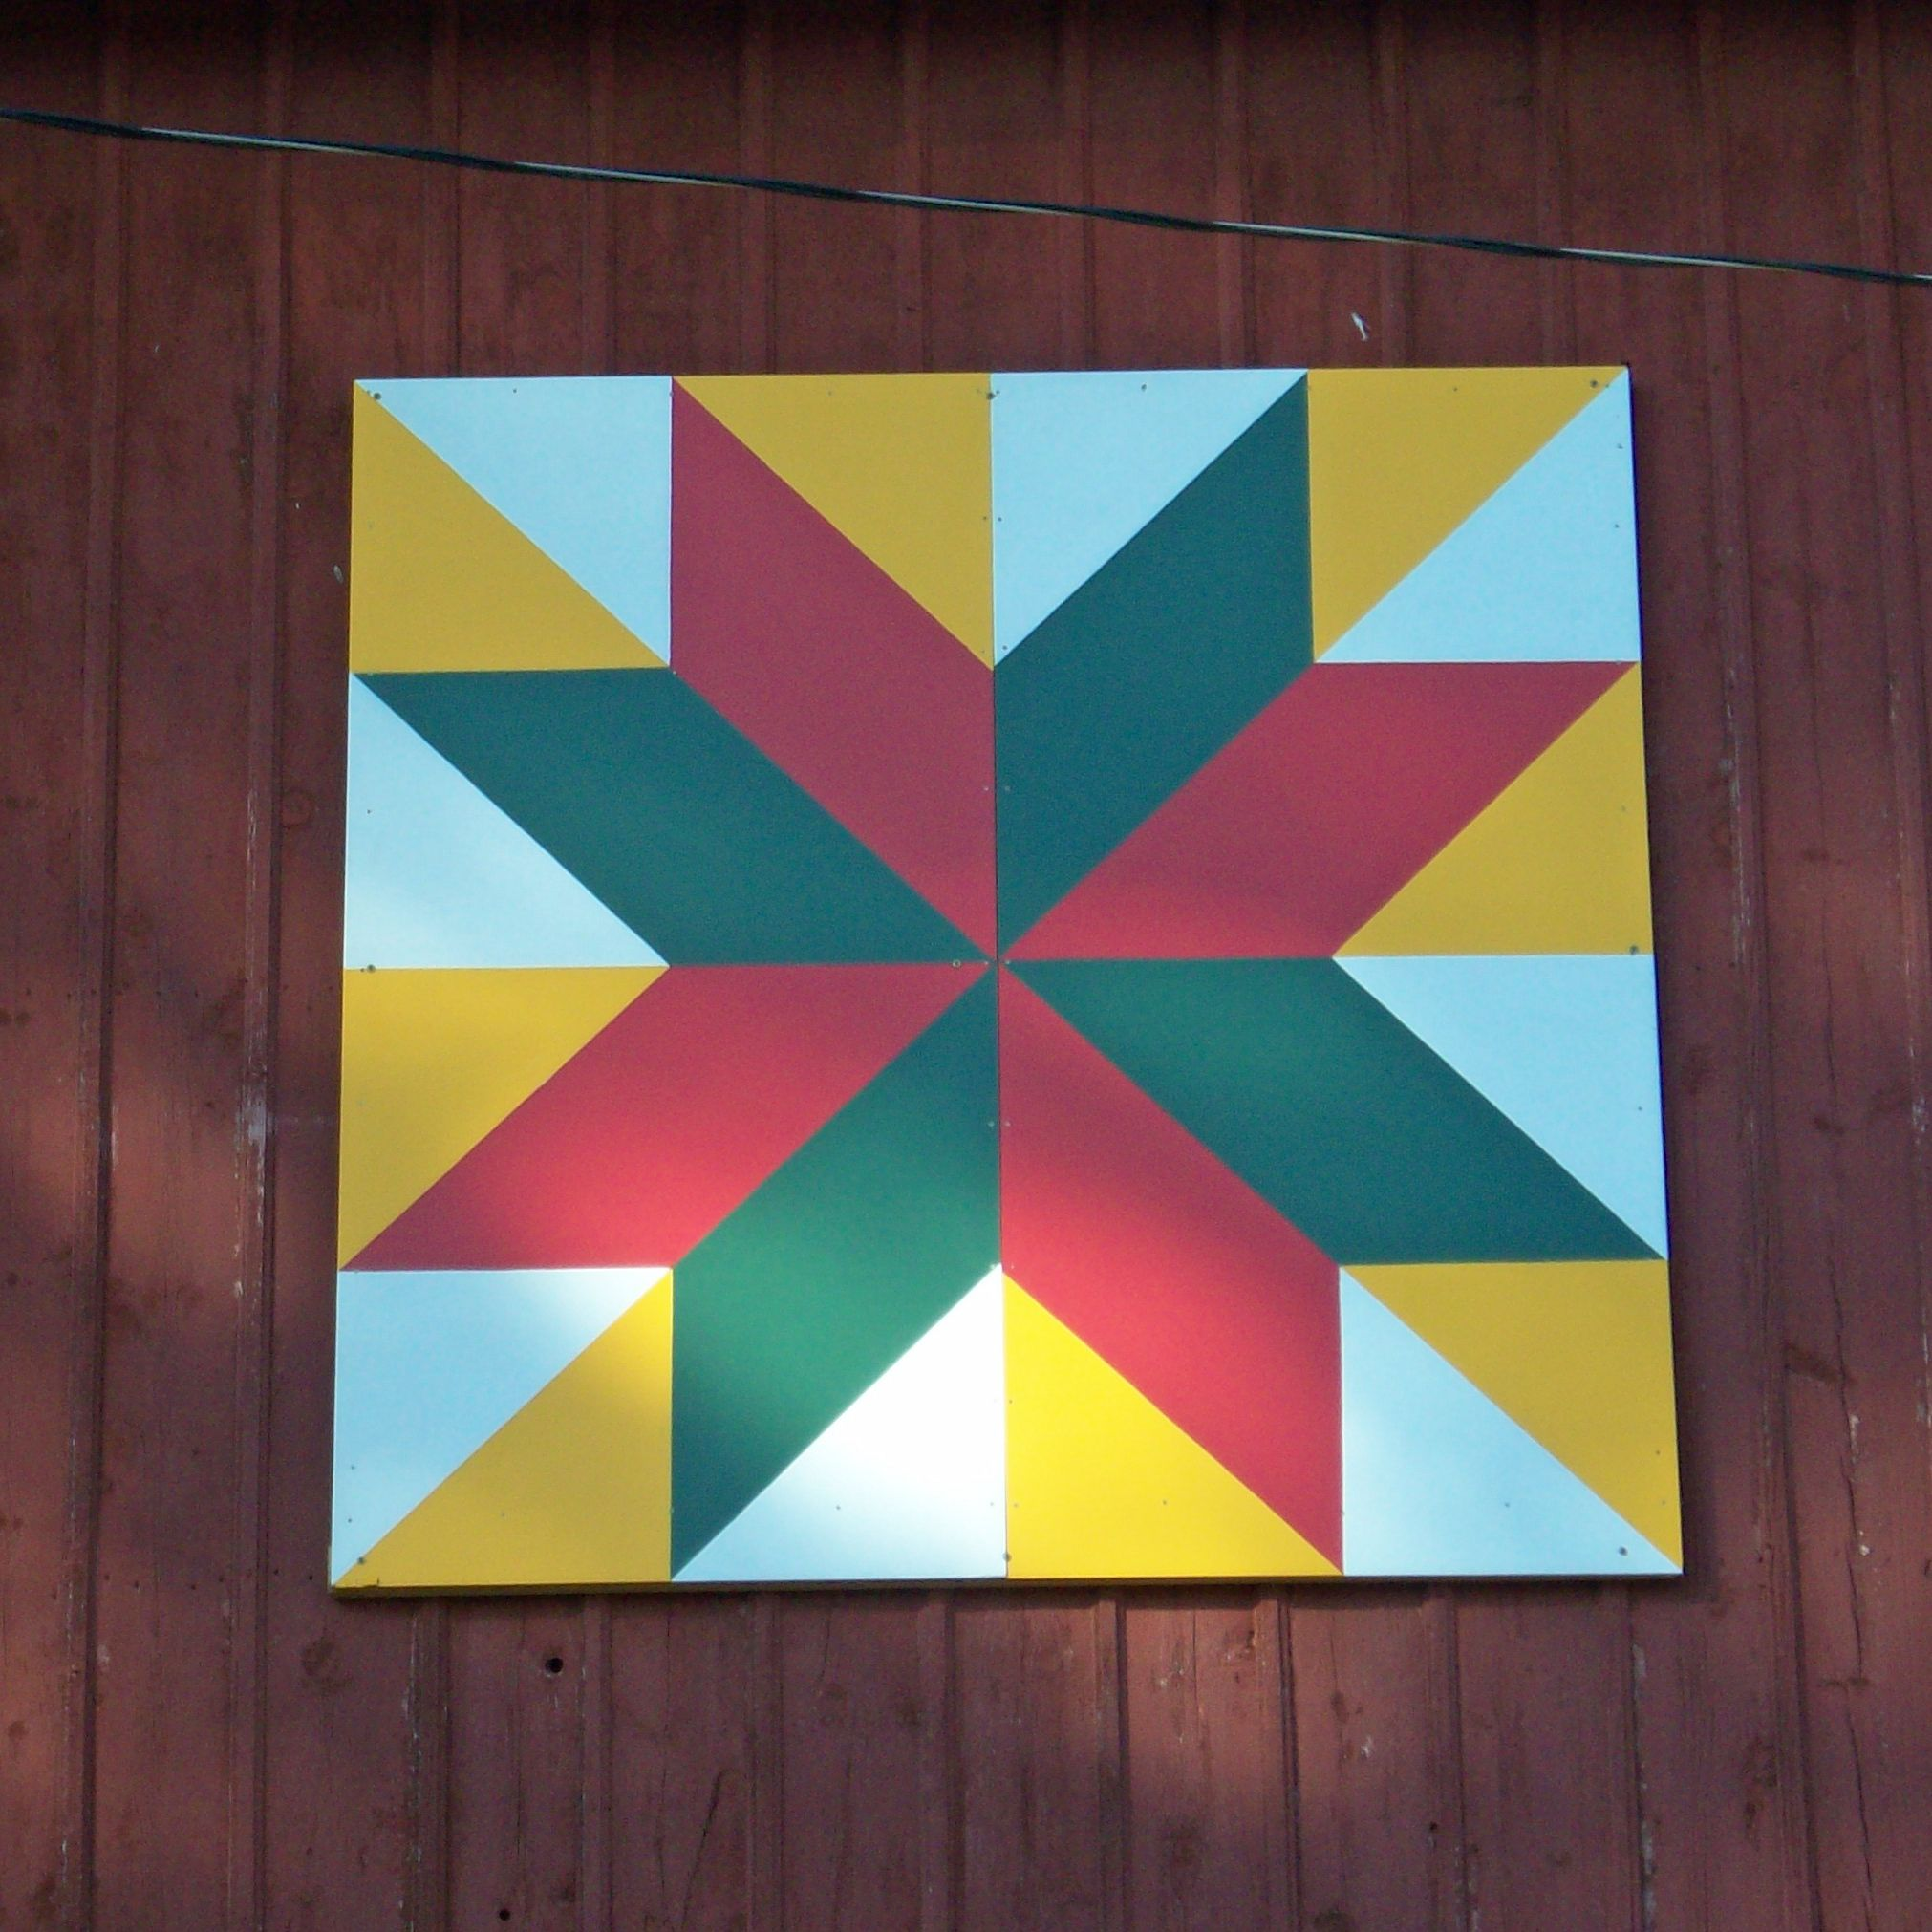 Barn Quilt Patterns To Paint | Quilt Pattern: Windmill Star ... : quilt patterns for barns - Adamdwight.com